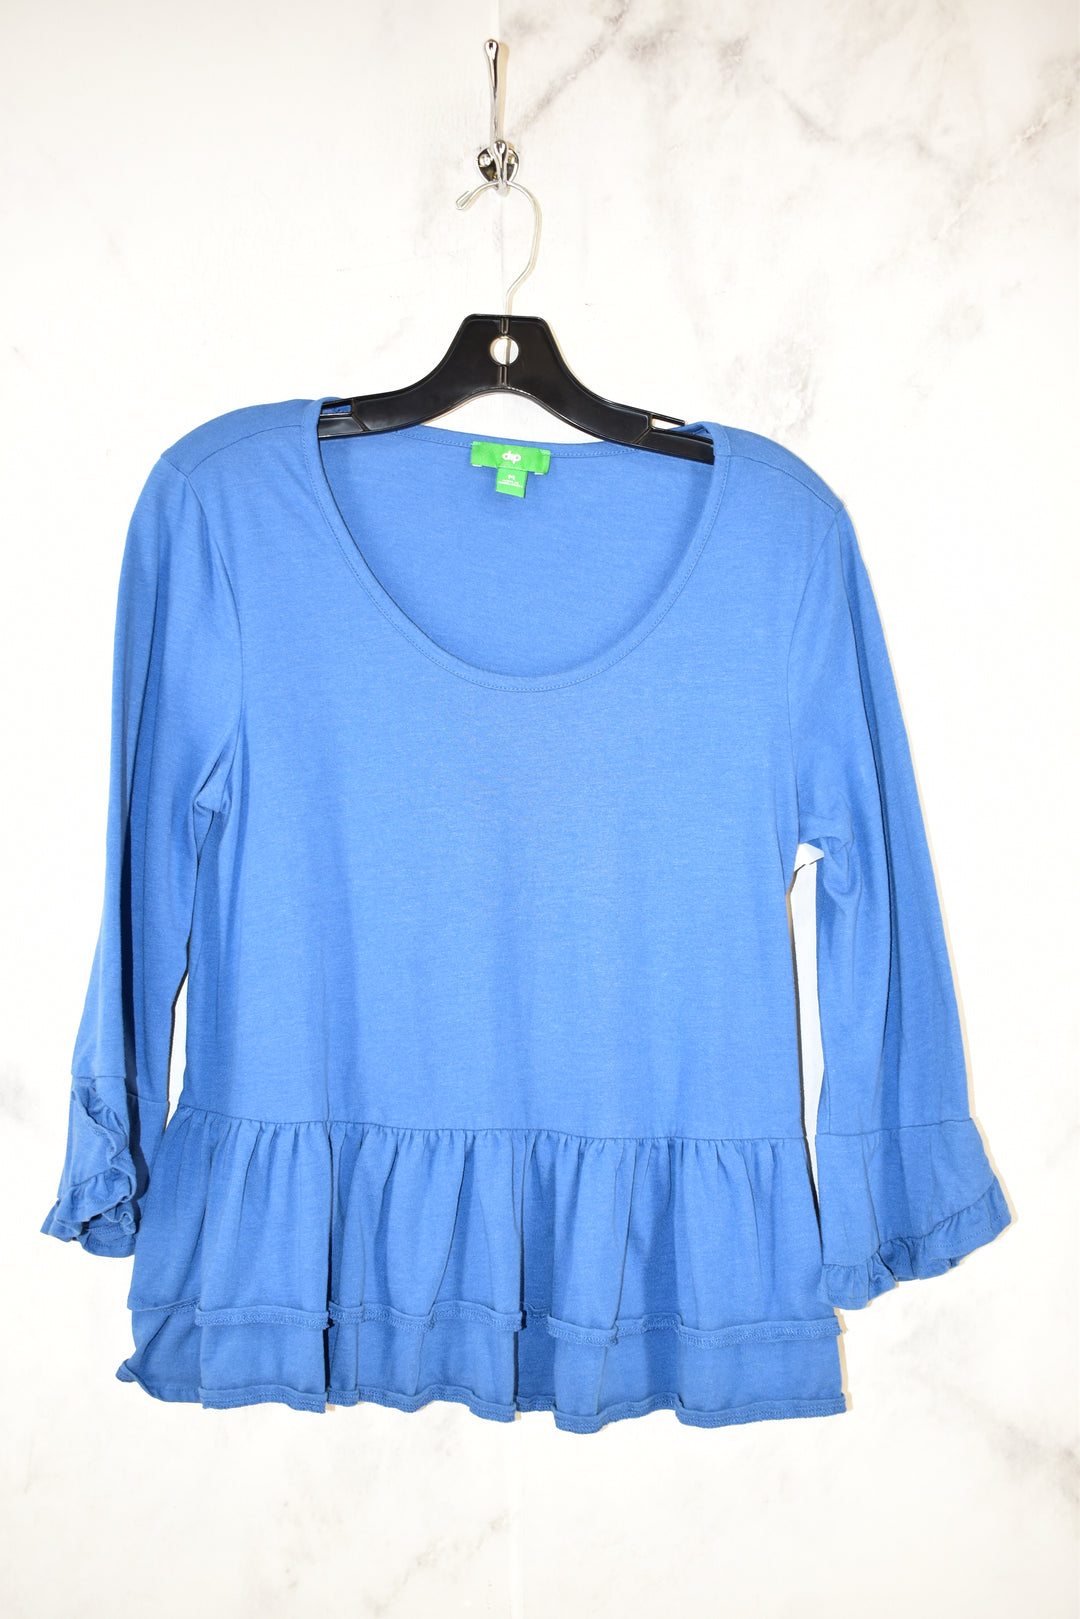 Primary Photo - BRAND: DIP <BR>STYLE: TOP LONG SLEEVE <BR>COLOR: BLUE <BR>SIZE: M <BR>SKU: 186-186200-769